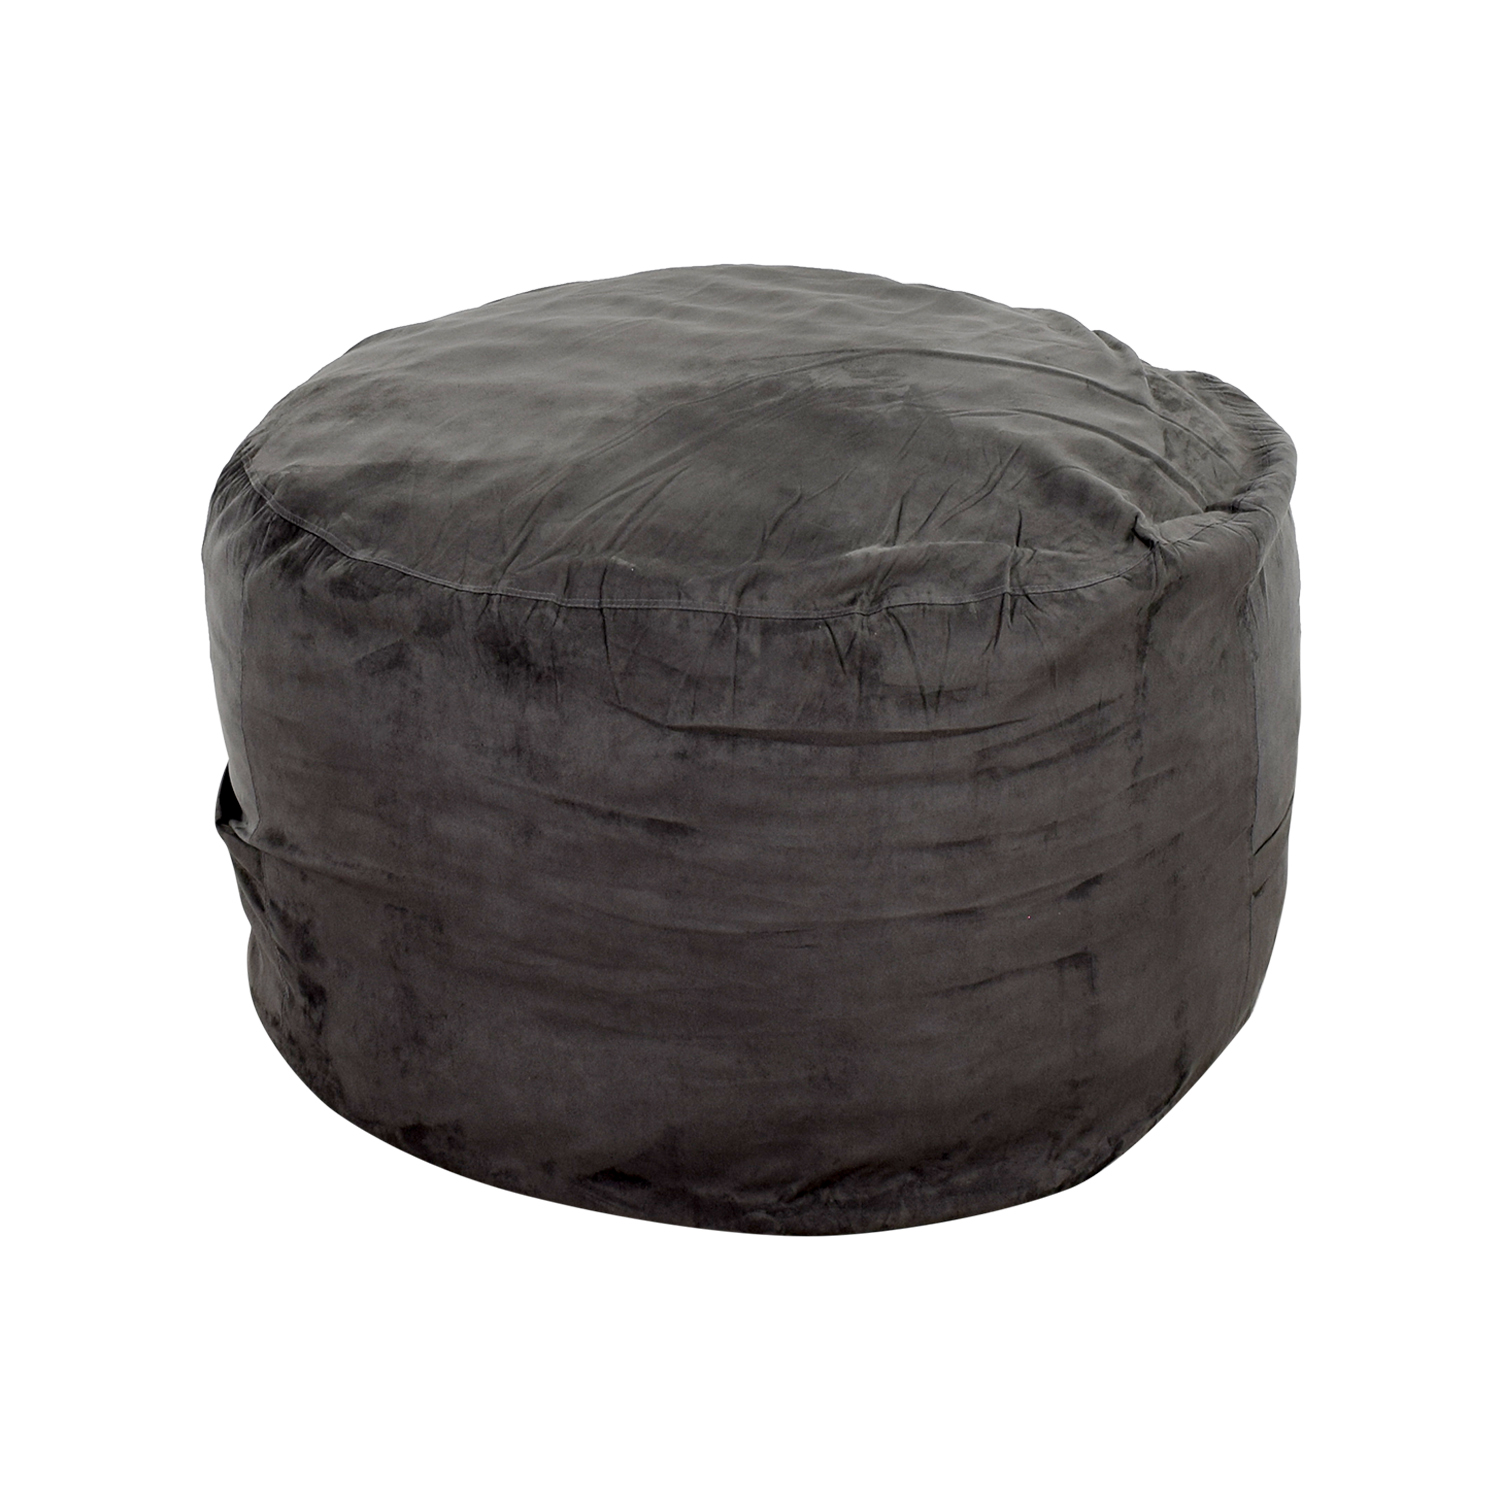 Chill Sack Chill Sack Grey Bean Bag Chair